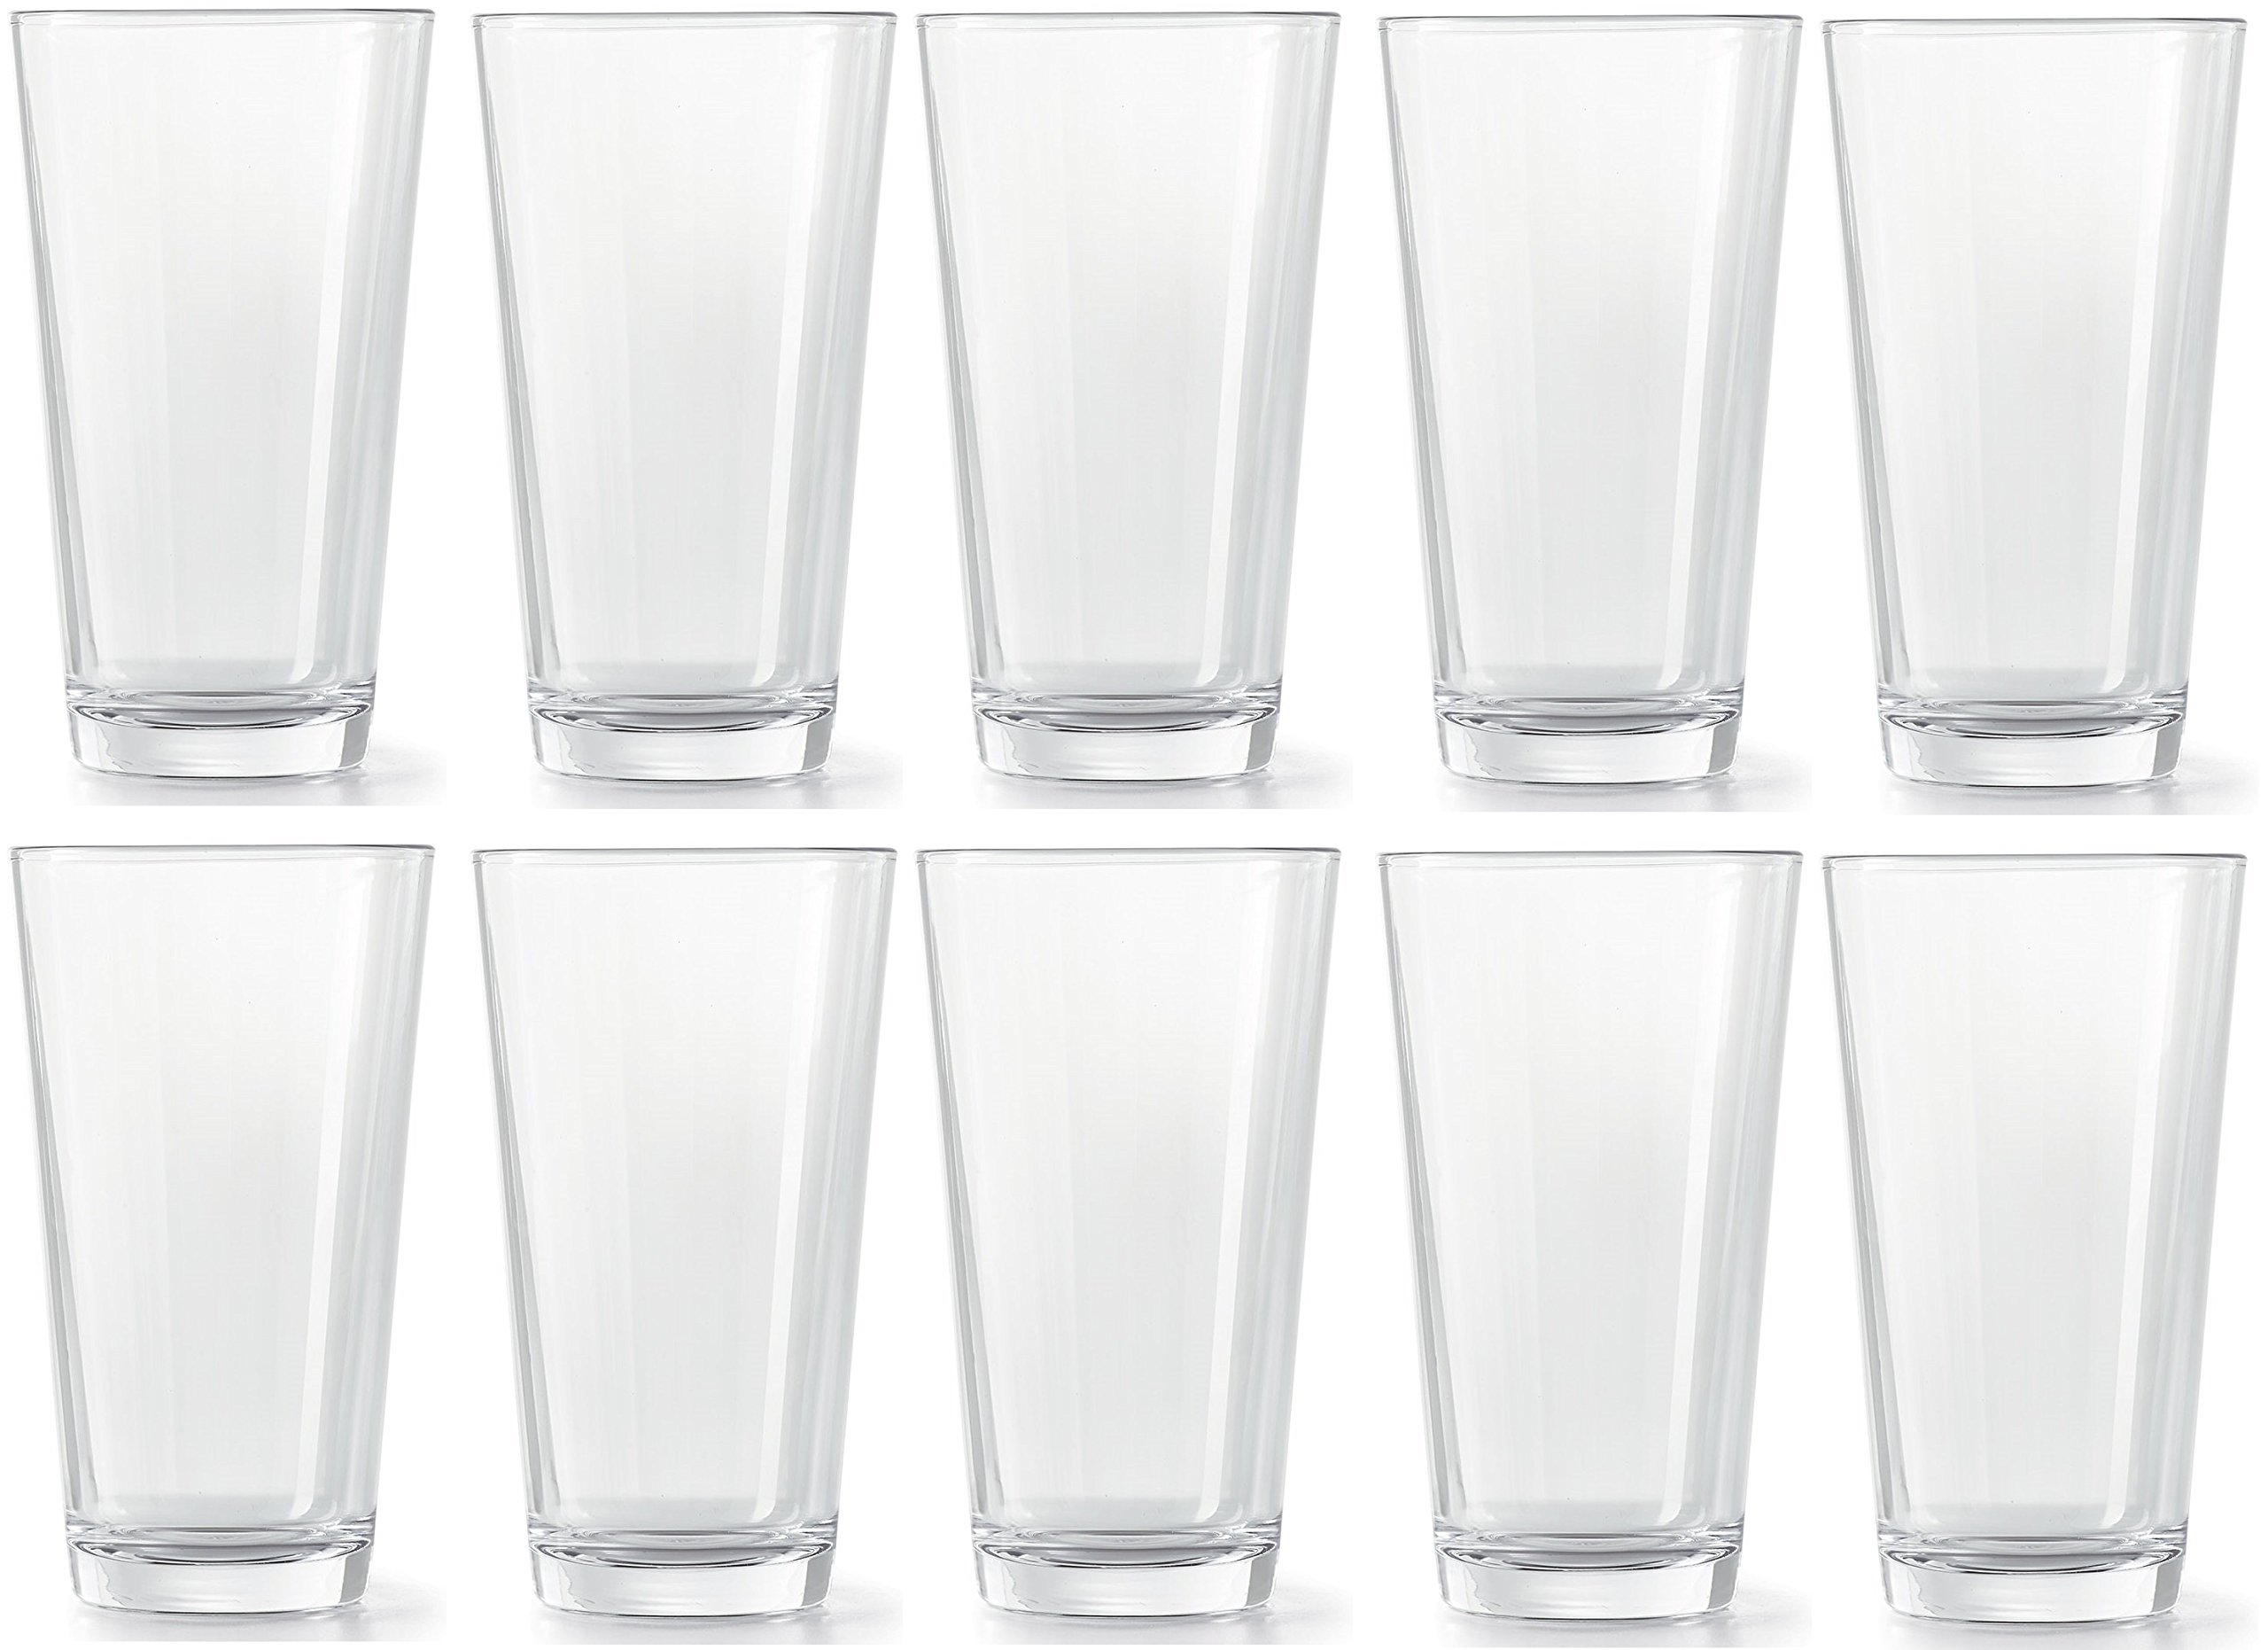 Circleware 44766 Spirit Set Glassware Products, Clear